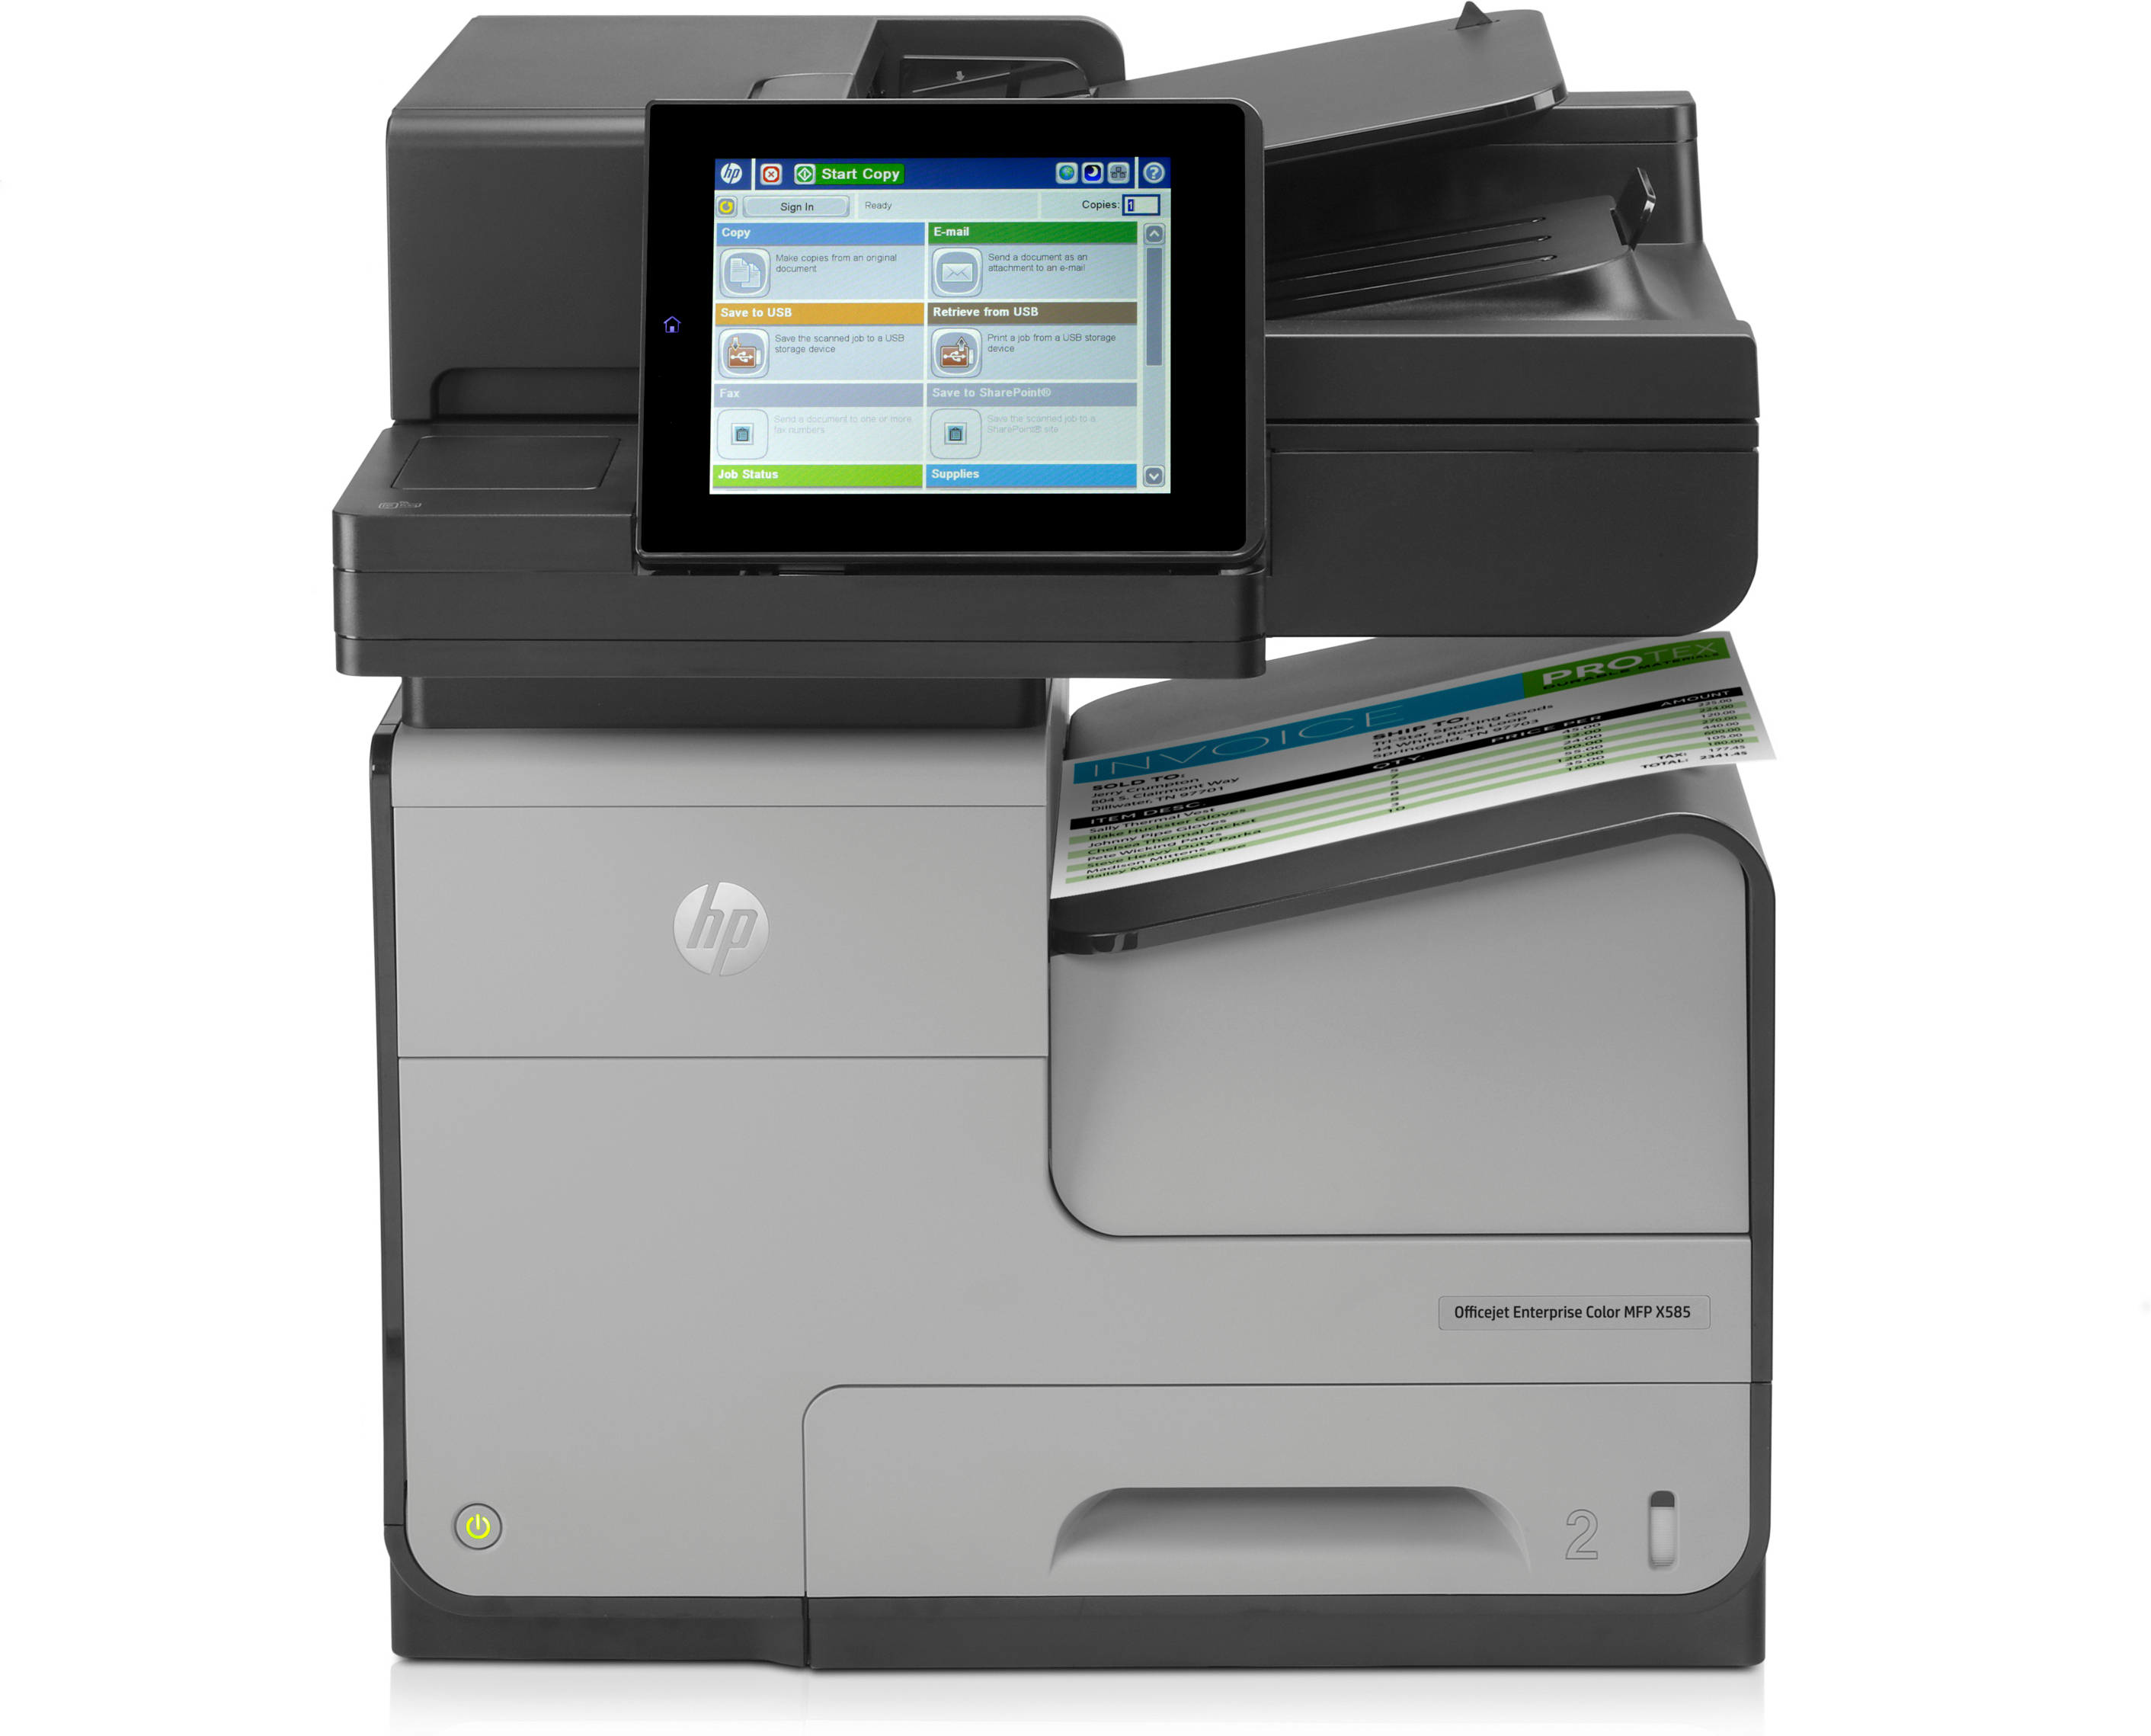 B5L04A HP OfficeJet Enterprise Color MFP X585dn - Refurbished